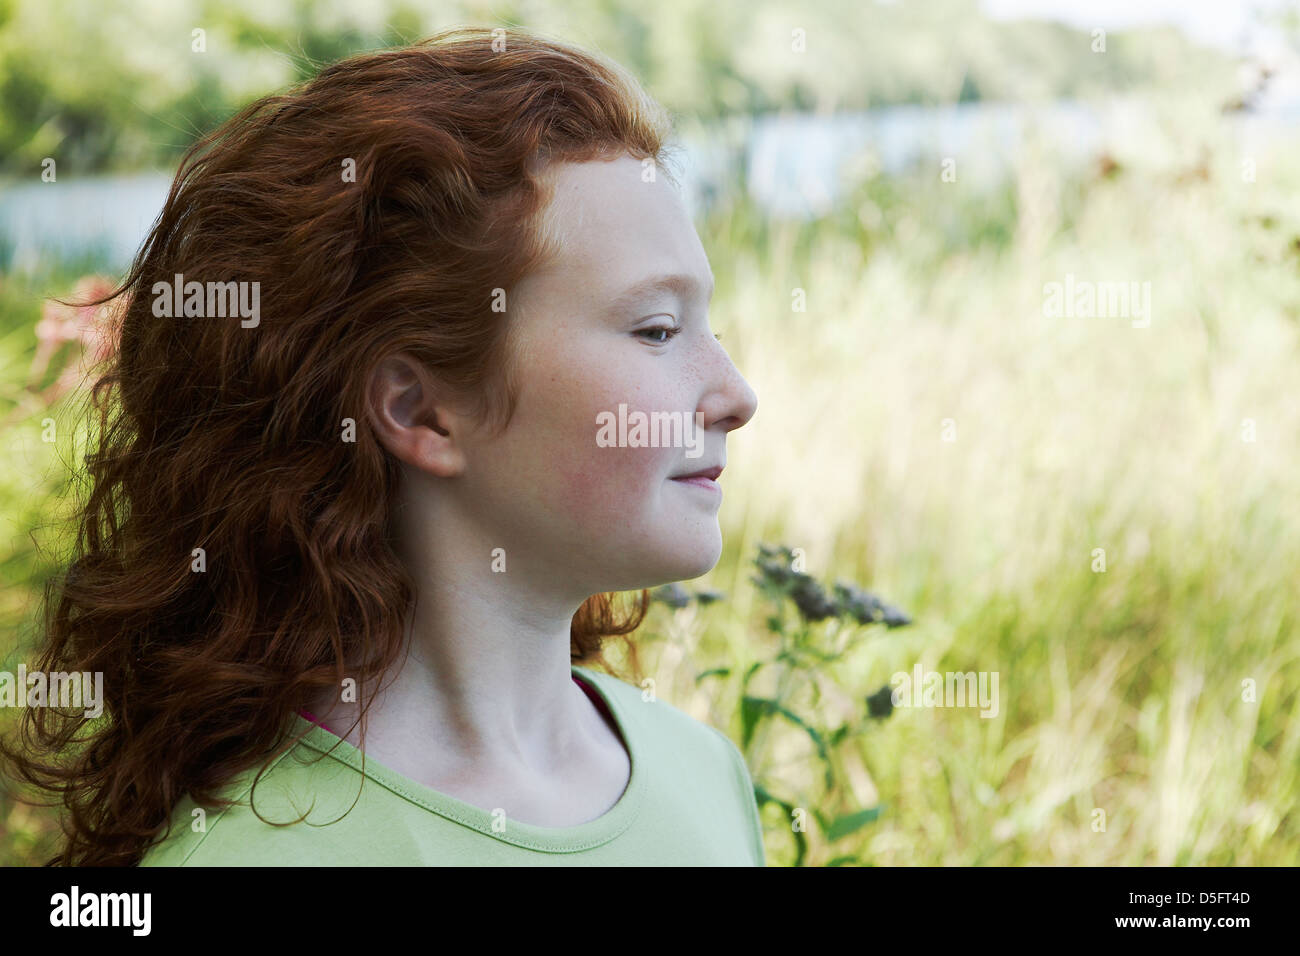 Red head girl in profile. - Stock Image